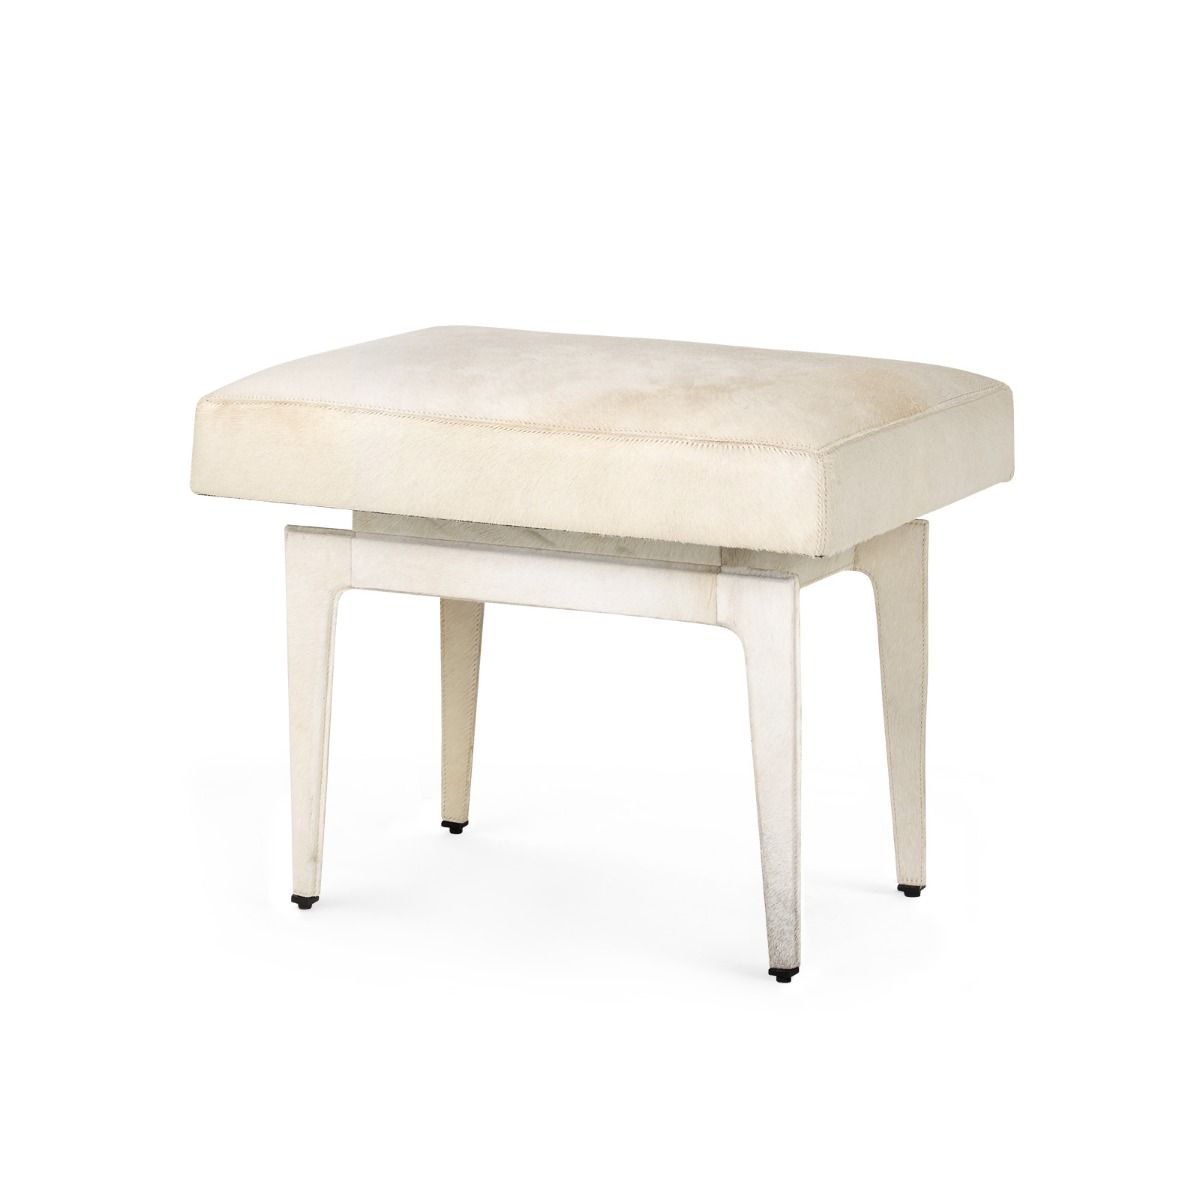 Bungalow 5 - Winston Stool - White